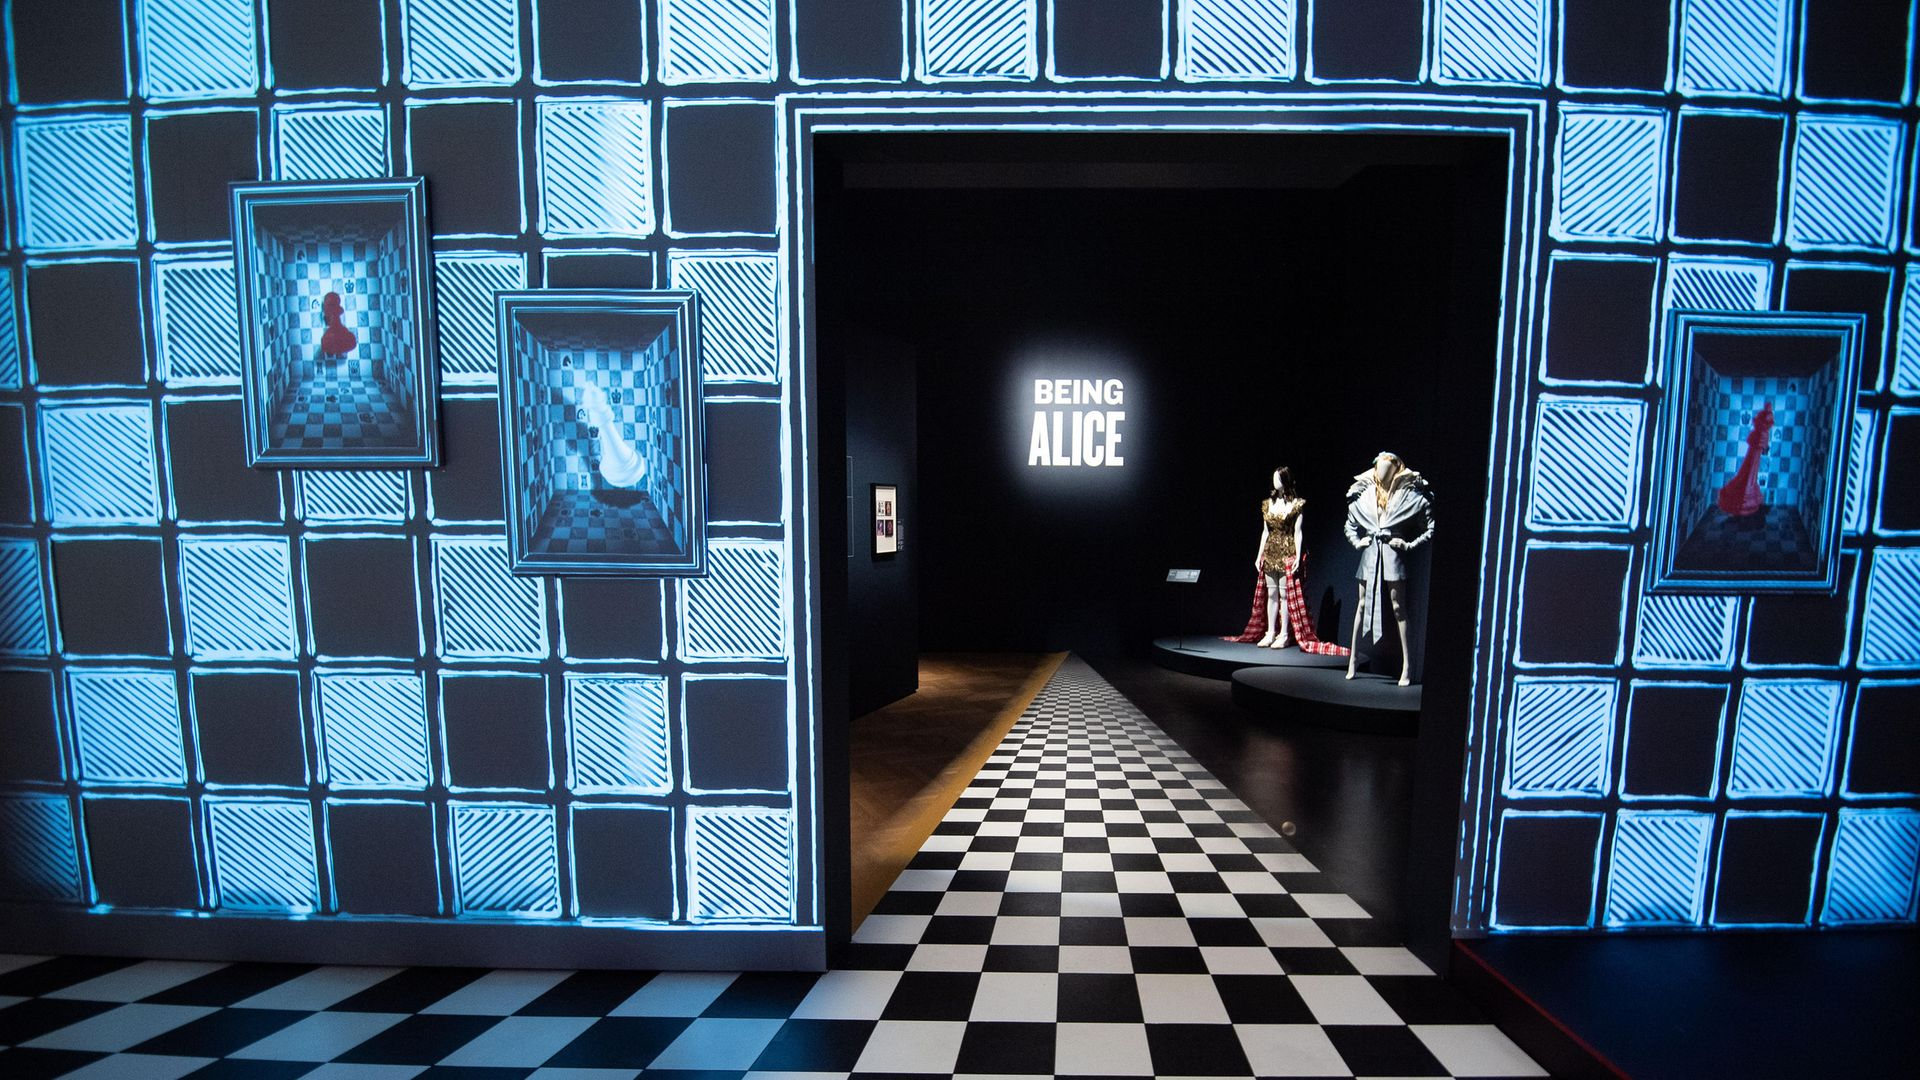 Exhibits on show at the V&A's Alice: Curiouser and Curiouser exhibition - Credit: Getty Images